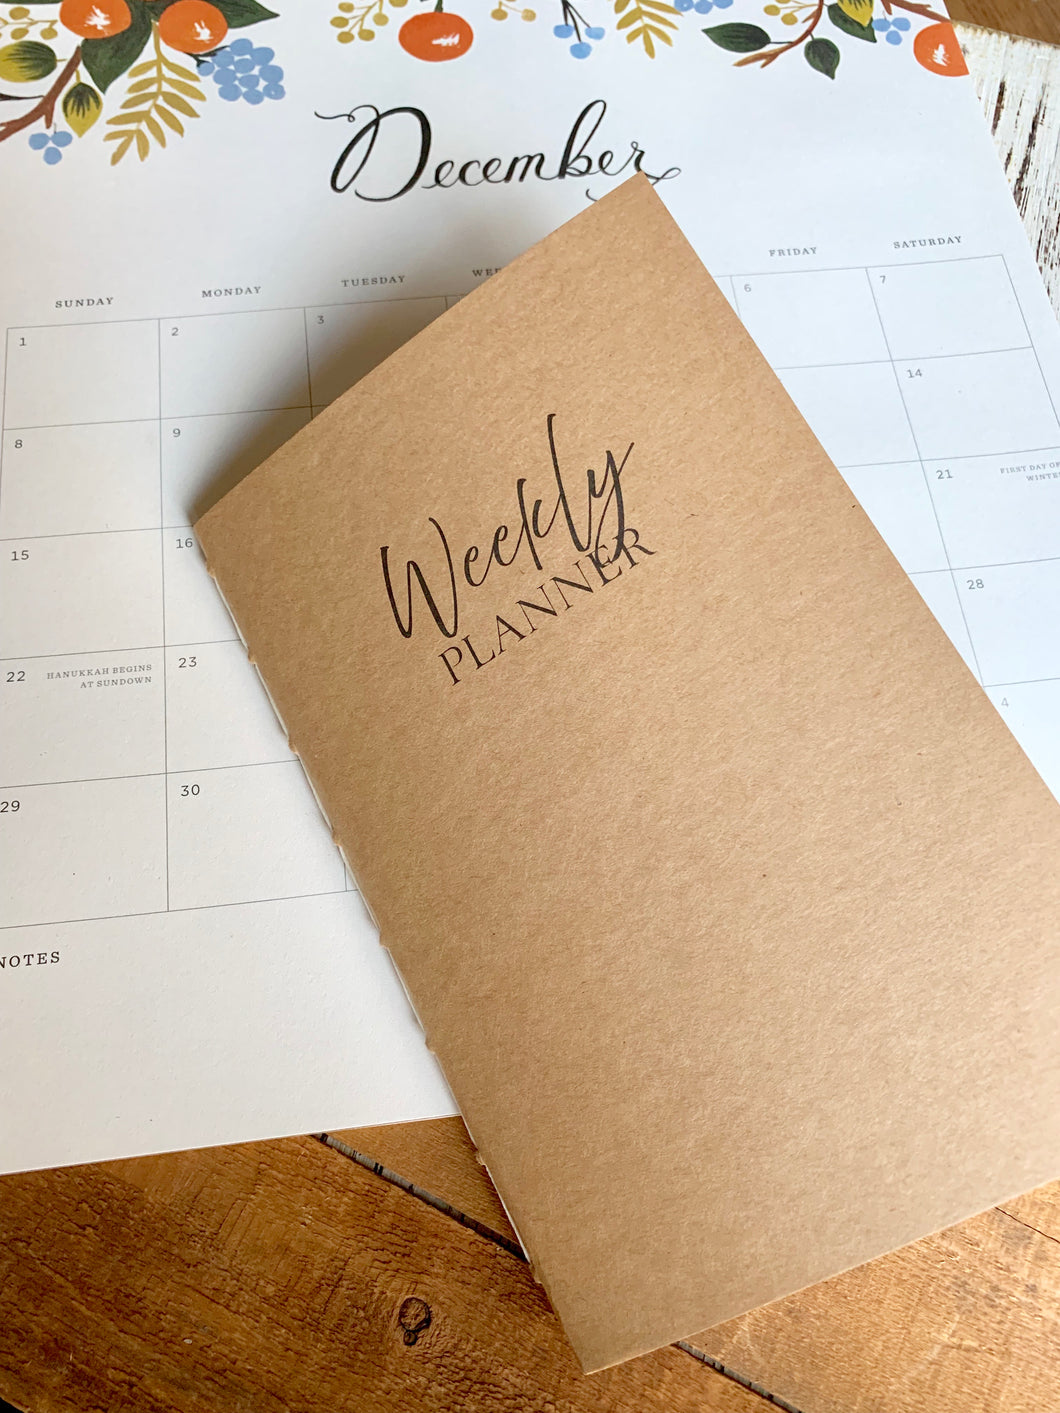 Weekly Planner Journal Insert